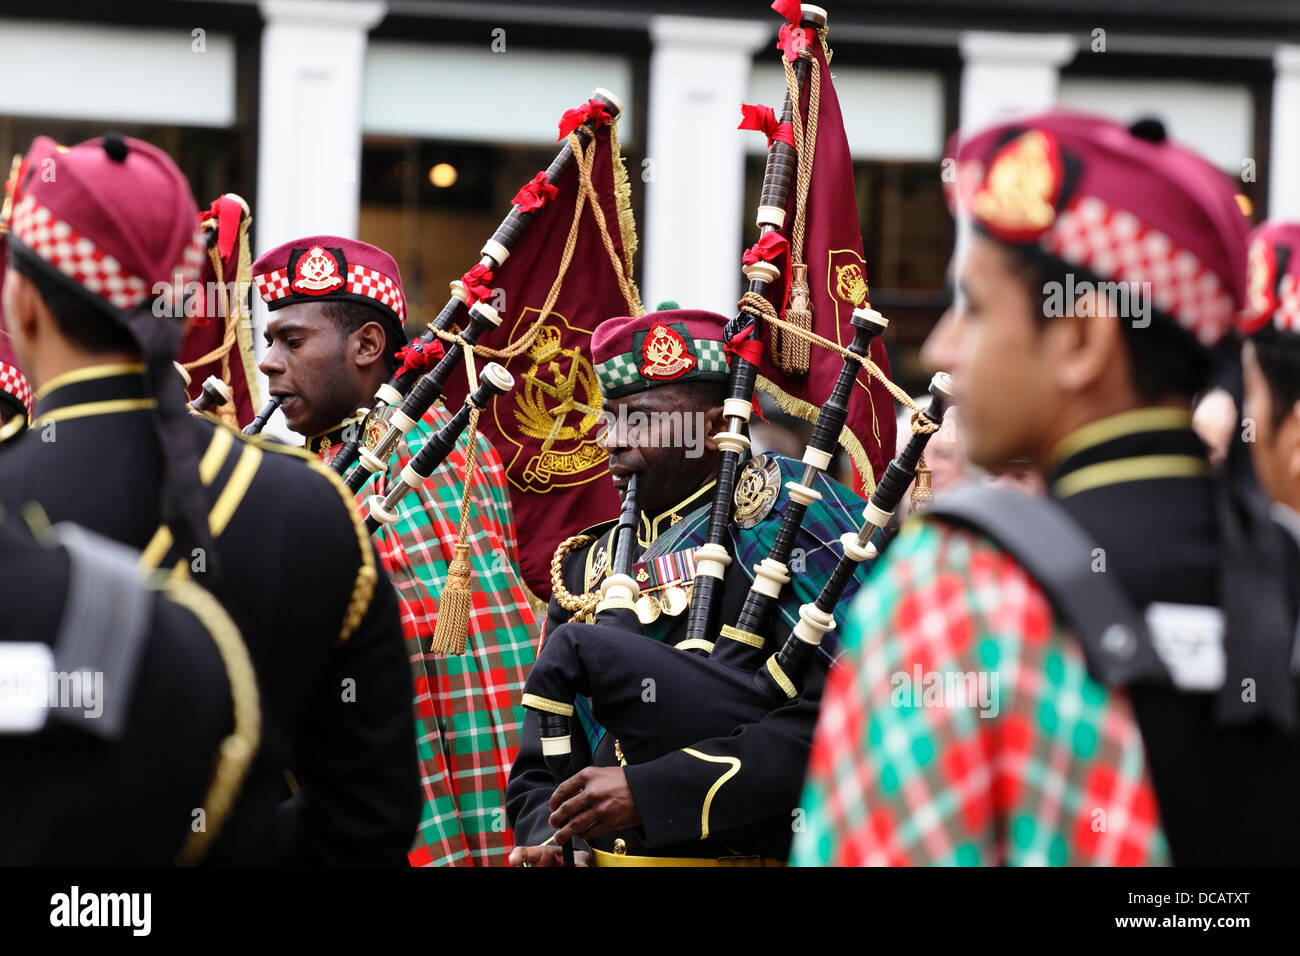 Glasgow, Scotland, UK, Wednesday, 14th August, 2013. The Royal Guard of Oman Pipe Band playing in Buchanan Street, Stock Photo